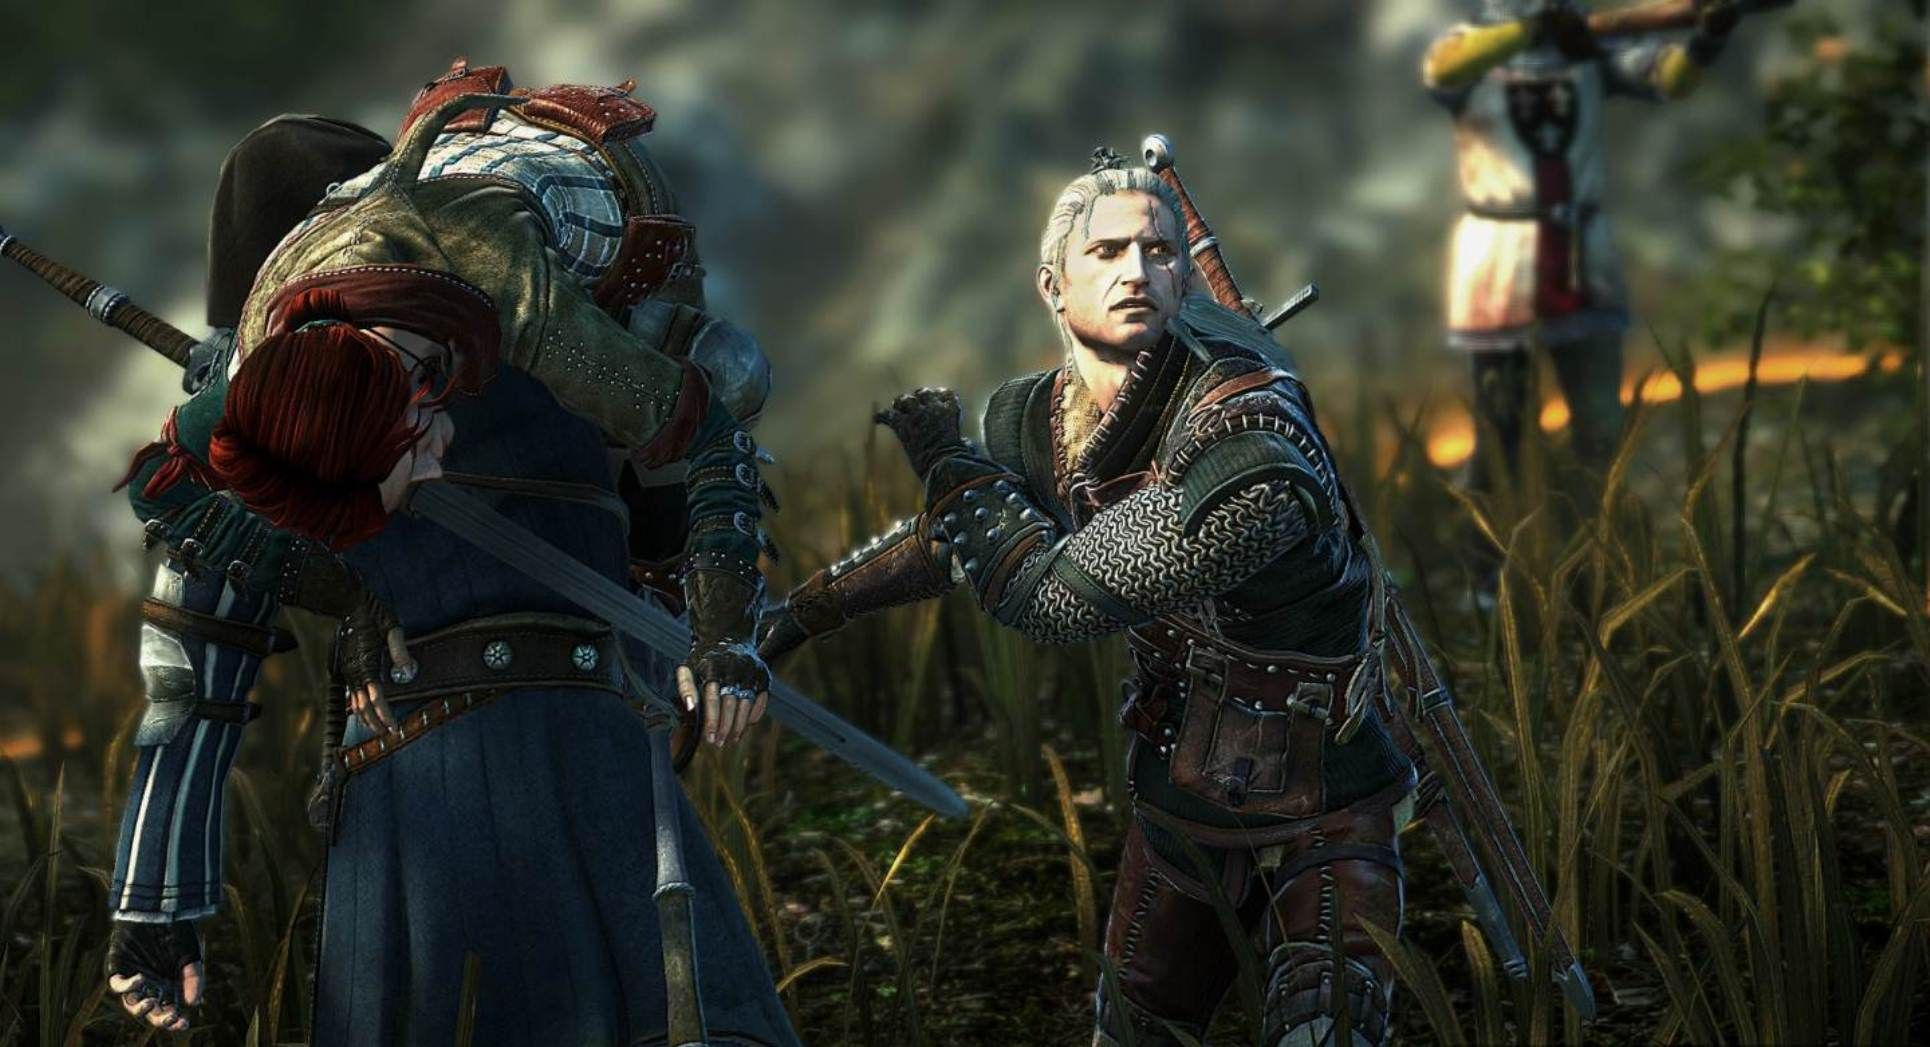 The Witcher 2 Assassins Of Kings Wallpaper Hd Wallpaper The Witcher The Witcher Game Witcher 2